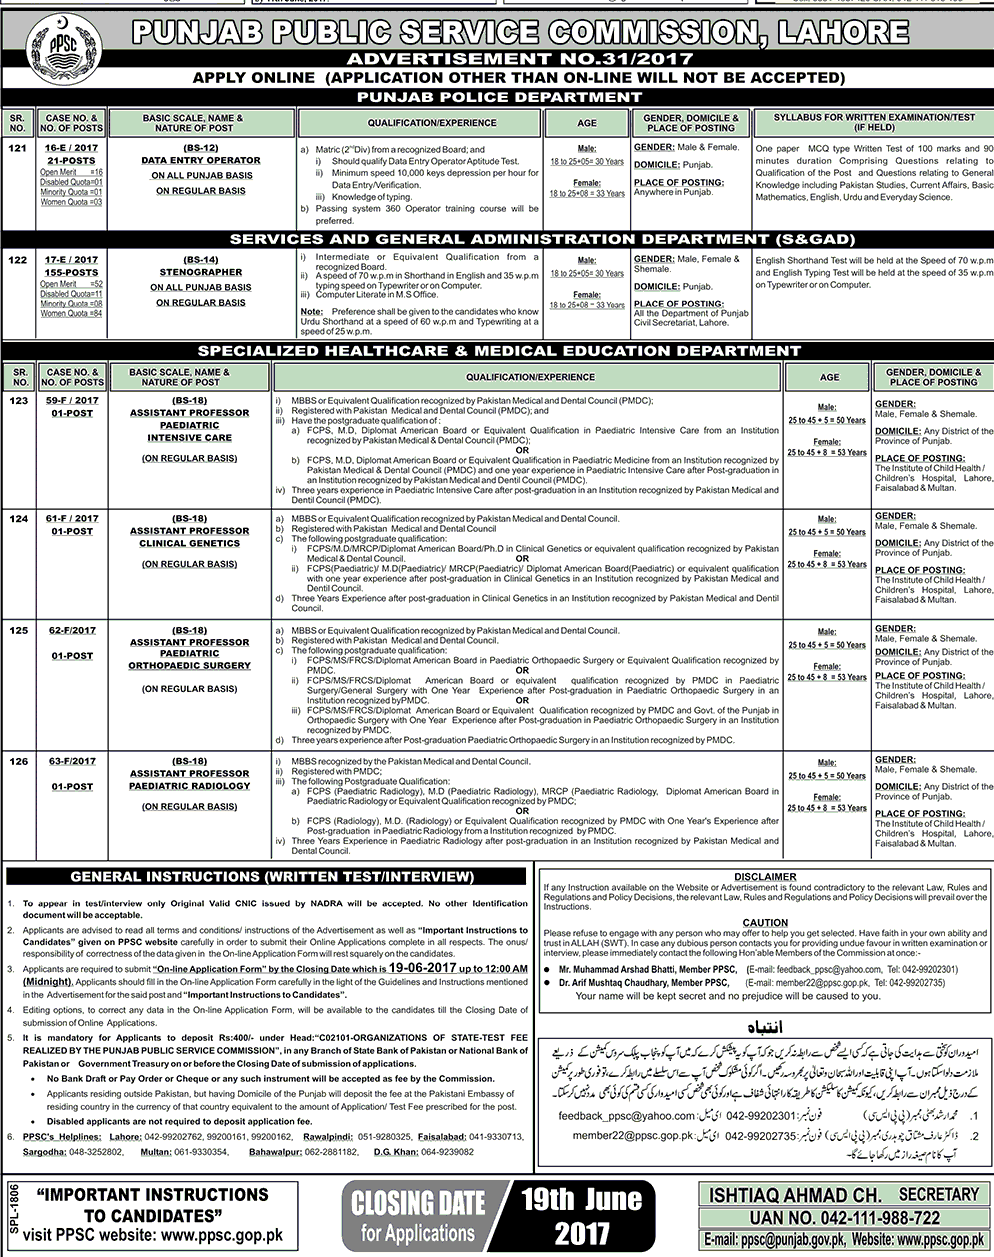 PPSC Jobs 2017 Service & General Administration, Specialized Healthcare Medical Education Departments